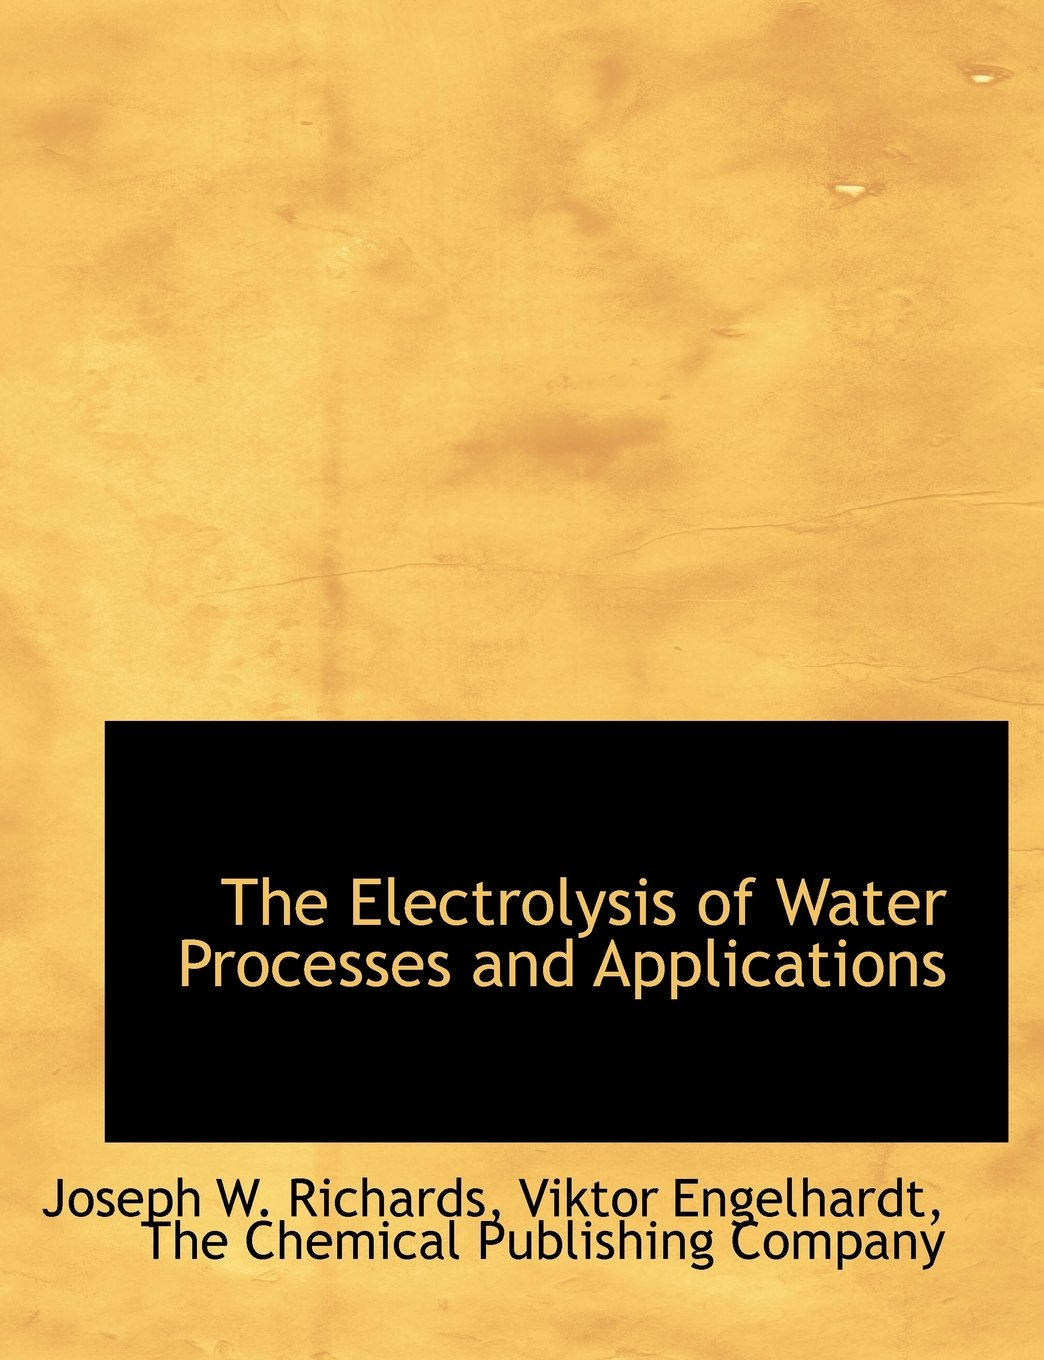 The Electrolysis of Water Processes and Applications: Joseph